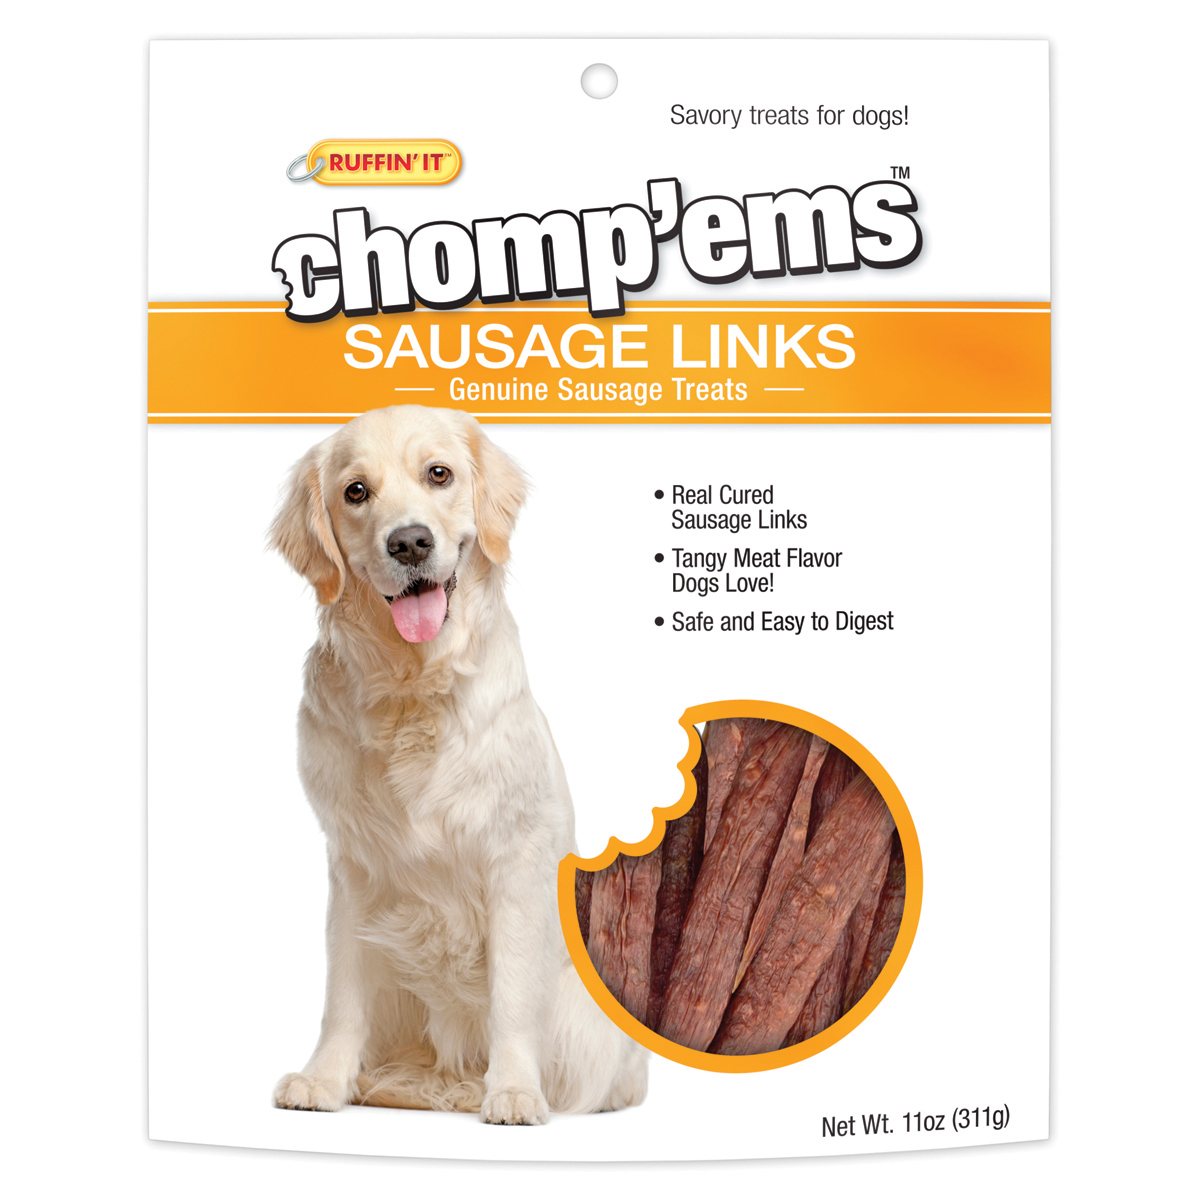 Chomp'ems Sausage Links, 11oz